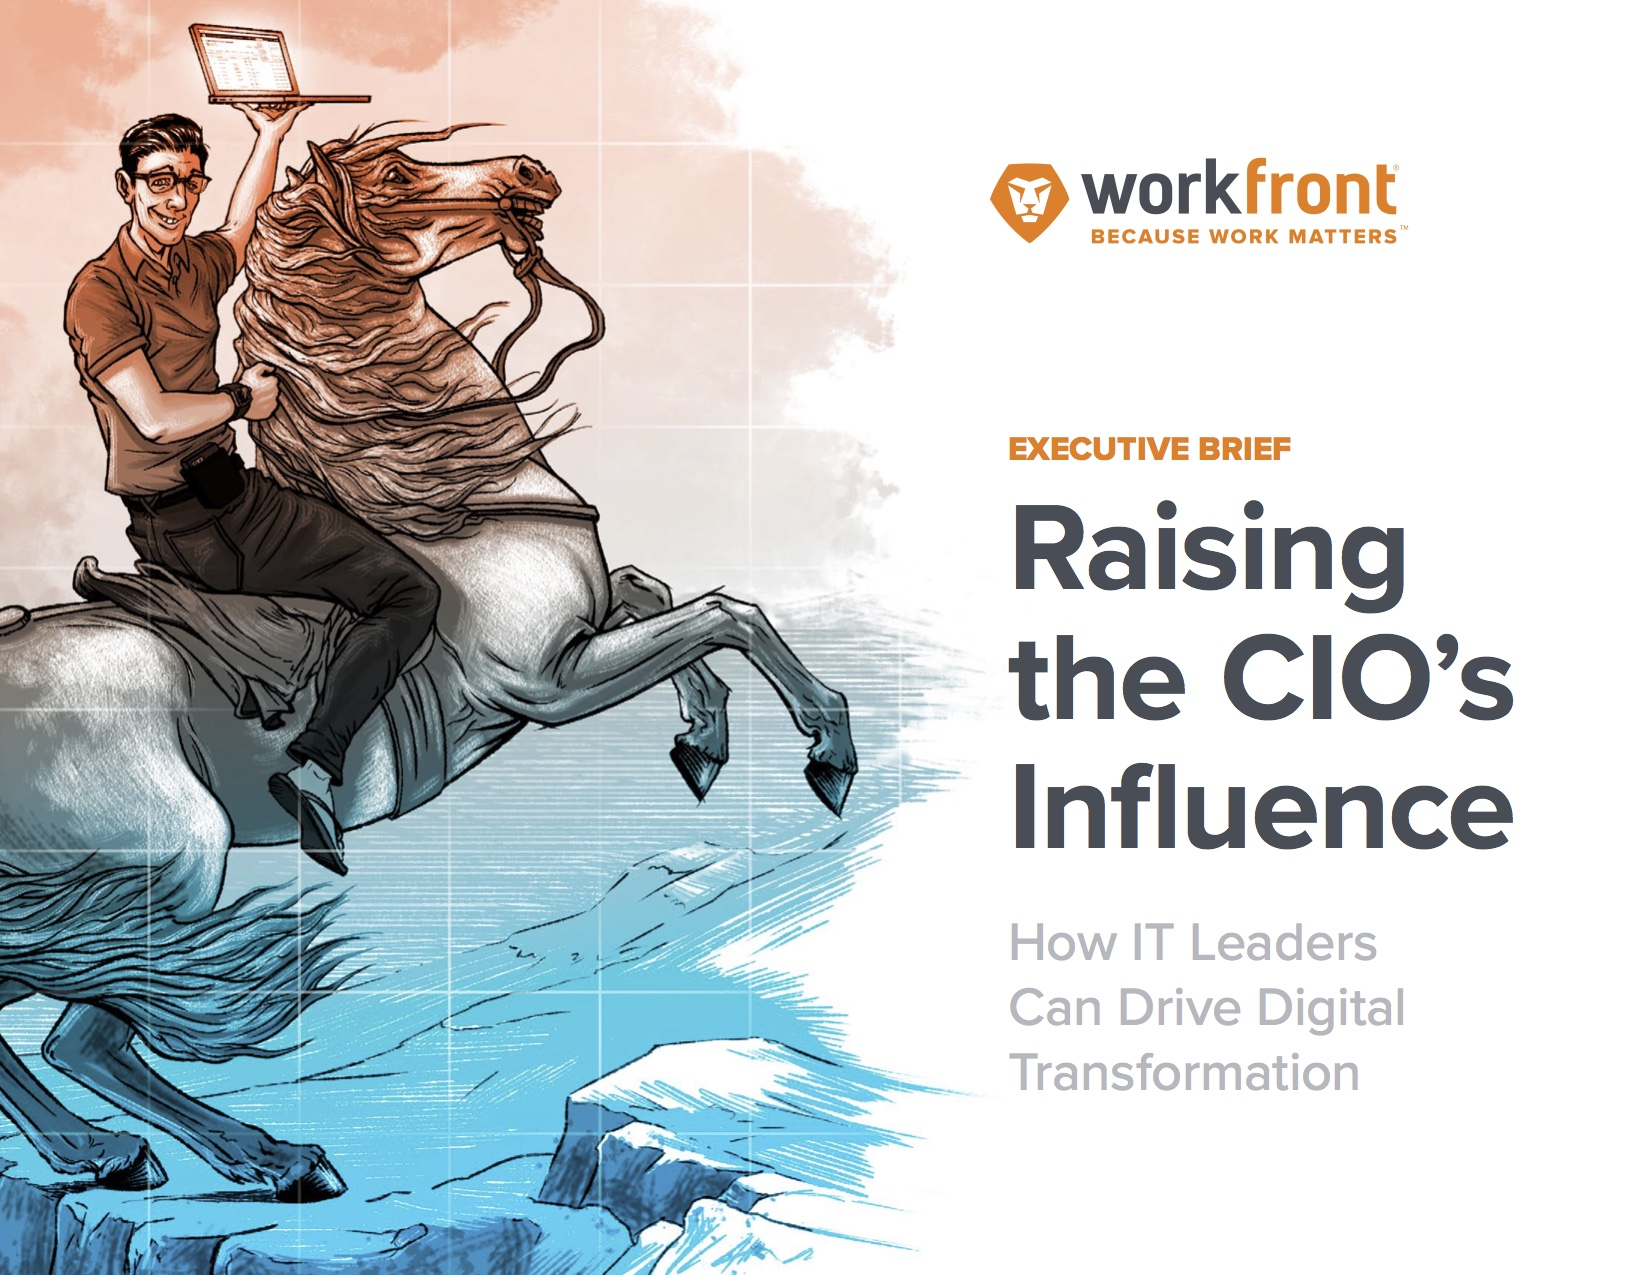 Raising the CIO's Influence: How IT Leaders Can Drive Digital Transformation